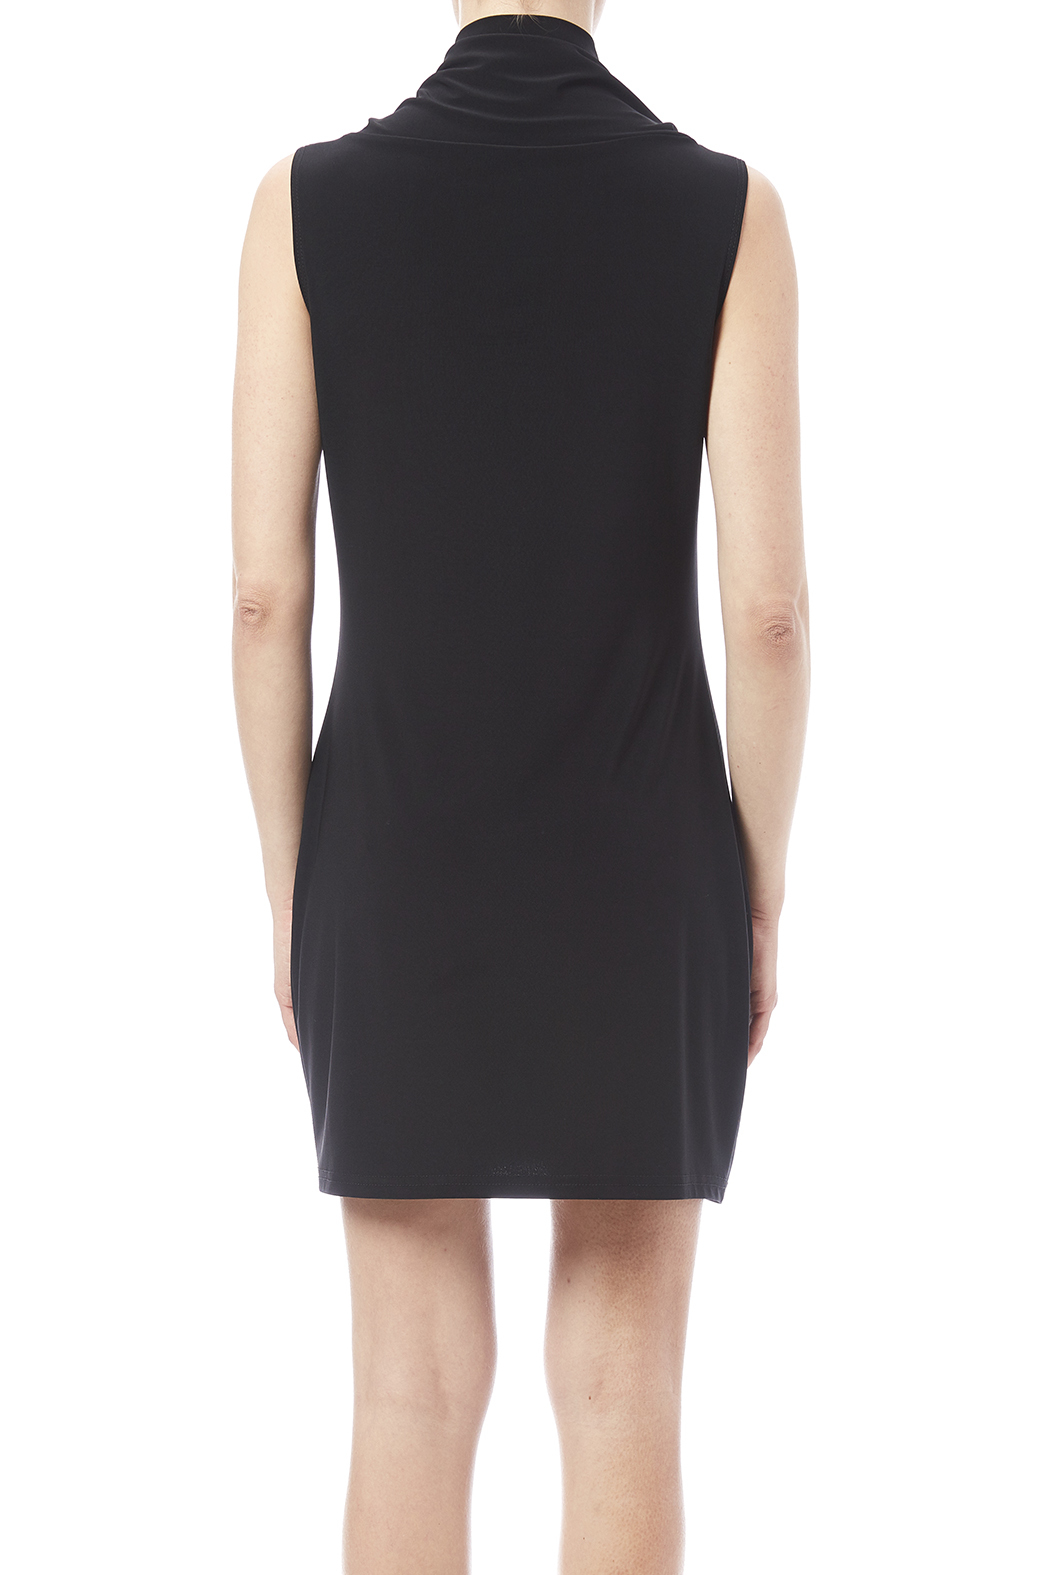 Joseph Ribkoff Cowl Sleeveless Tunic - Back Cropped Image